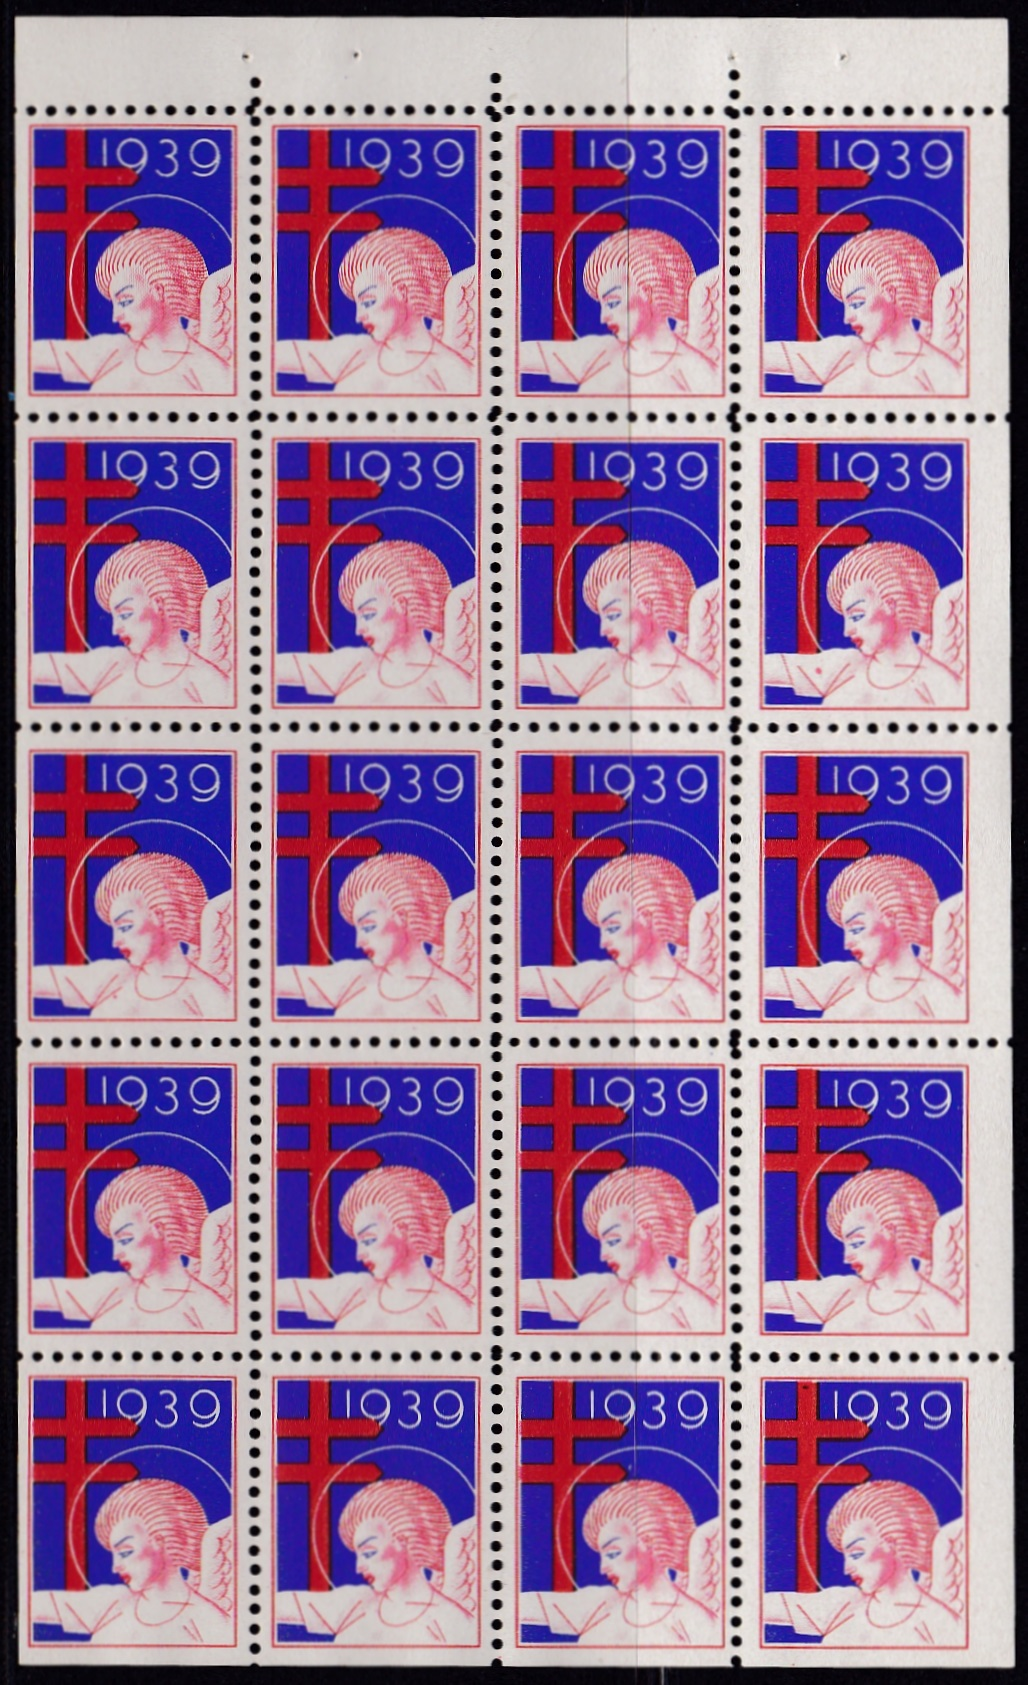 1939 US Christmas Seal booklet pane of 20